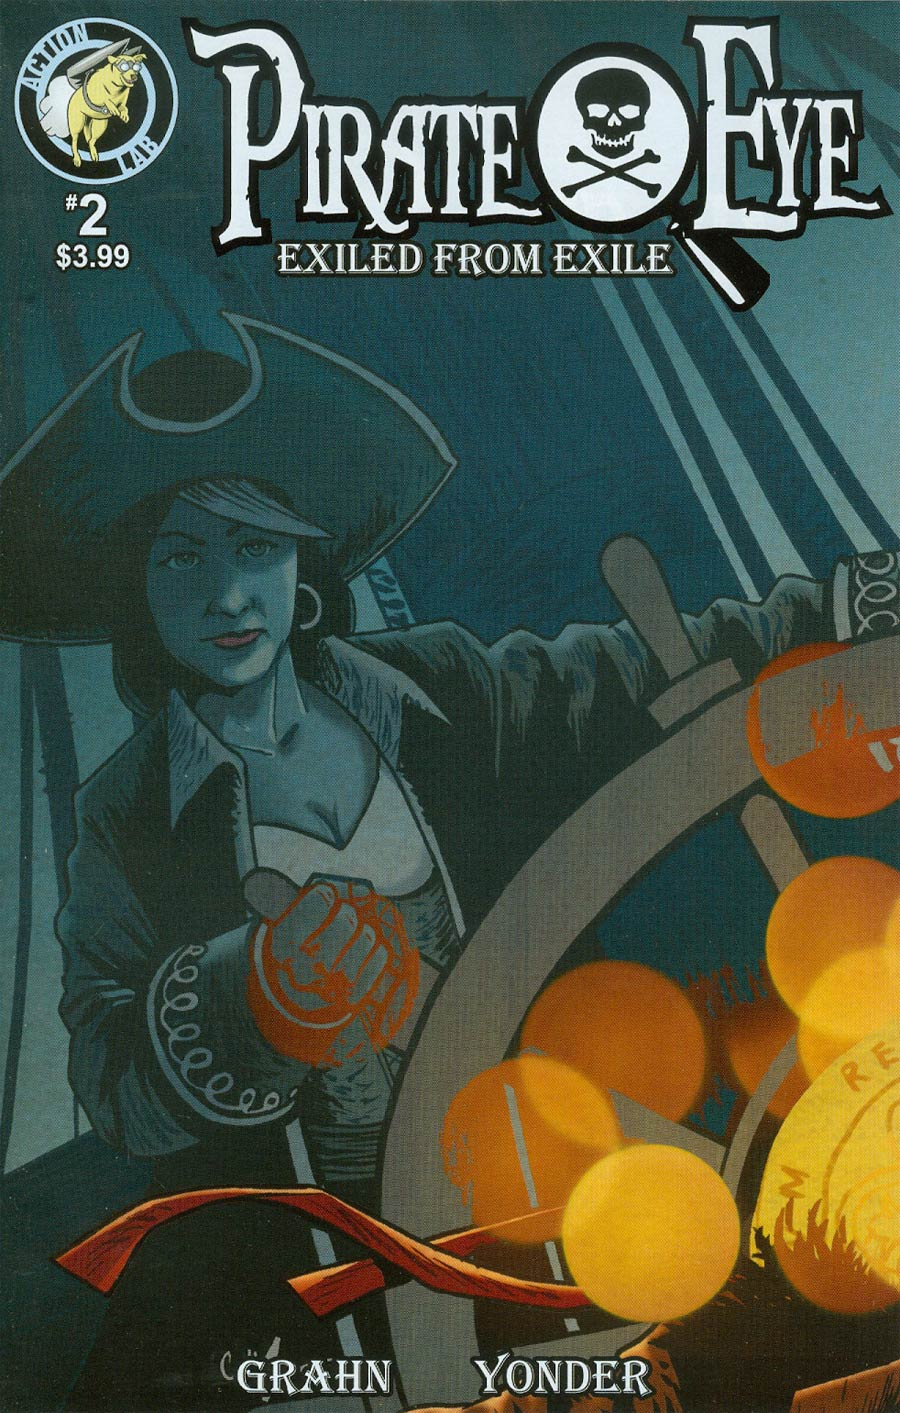 Pirate Eye Exiled From Exile #2